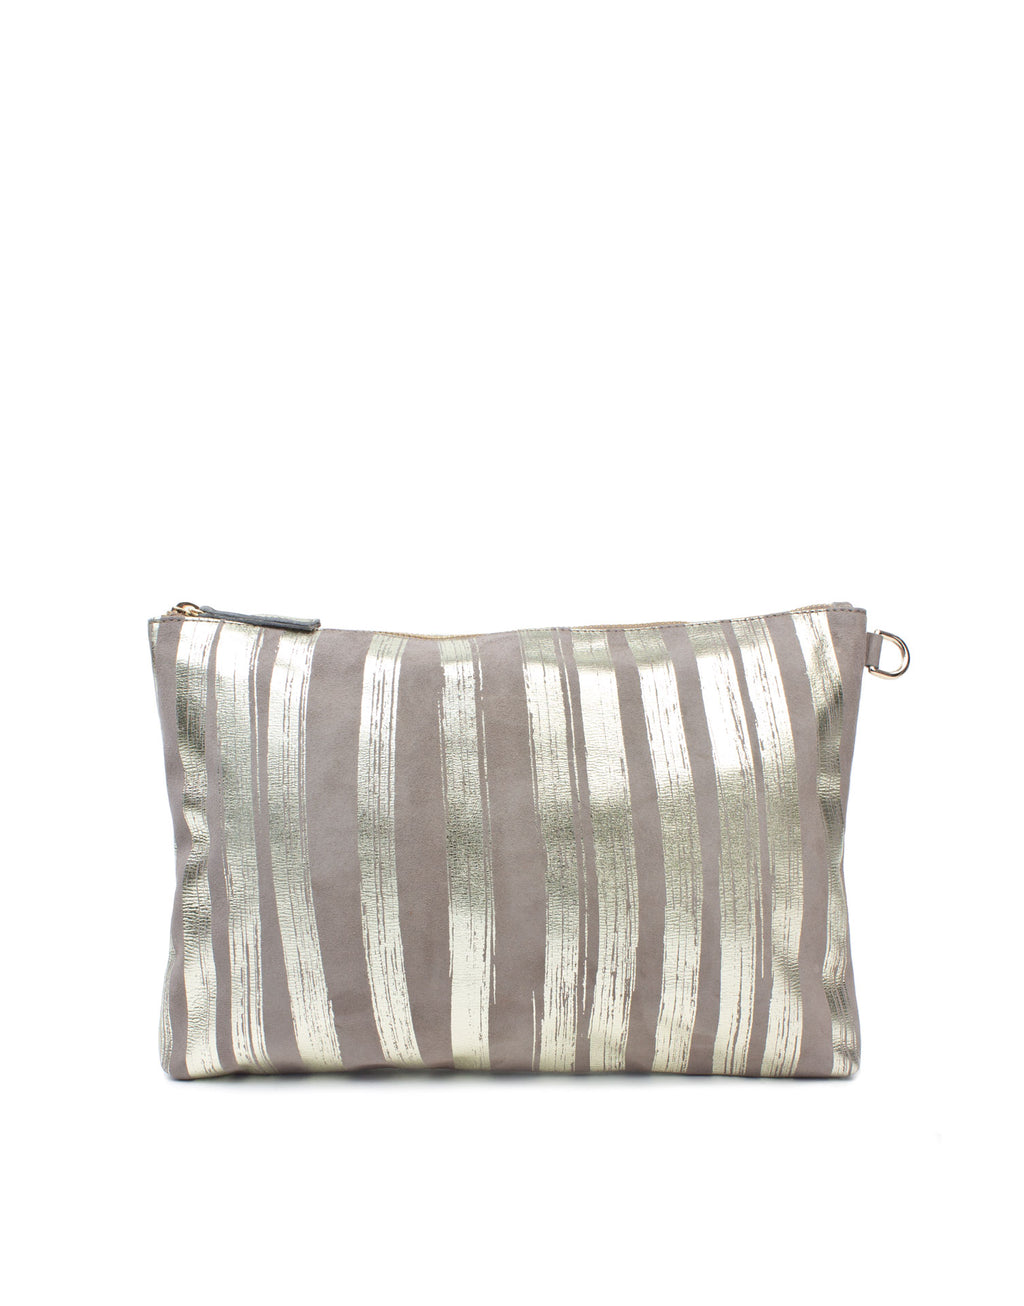 Medium in sized soft suede leather pouch by London designer Georgina Goodman. This is a unique leather pouch with the Georgina Goodman signature stripes in metallic foil.